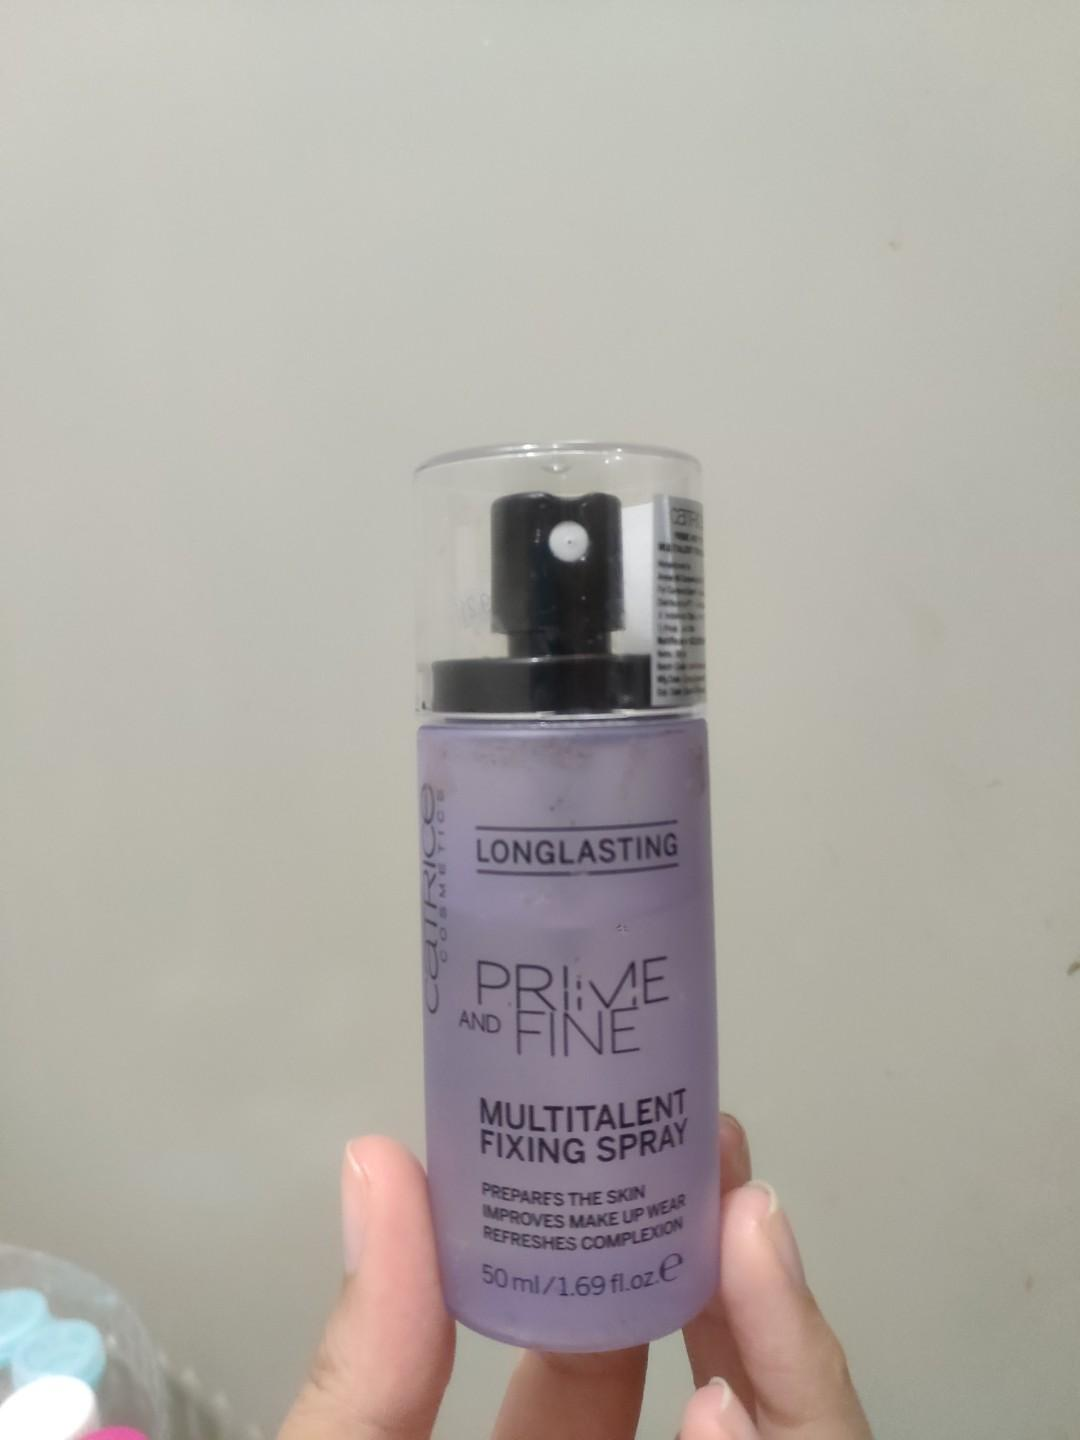 Catrice Long Lasting Prime and Fine Multitalent Fixing Spray